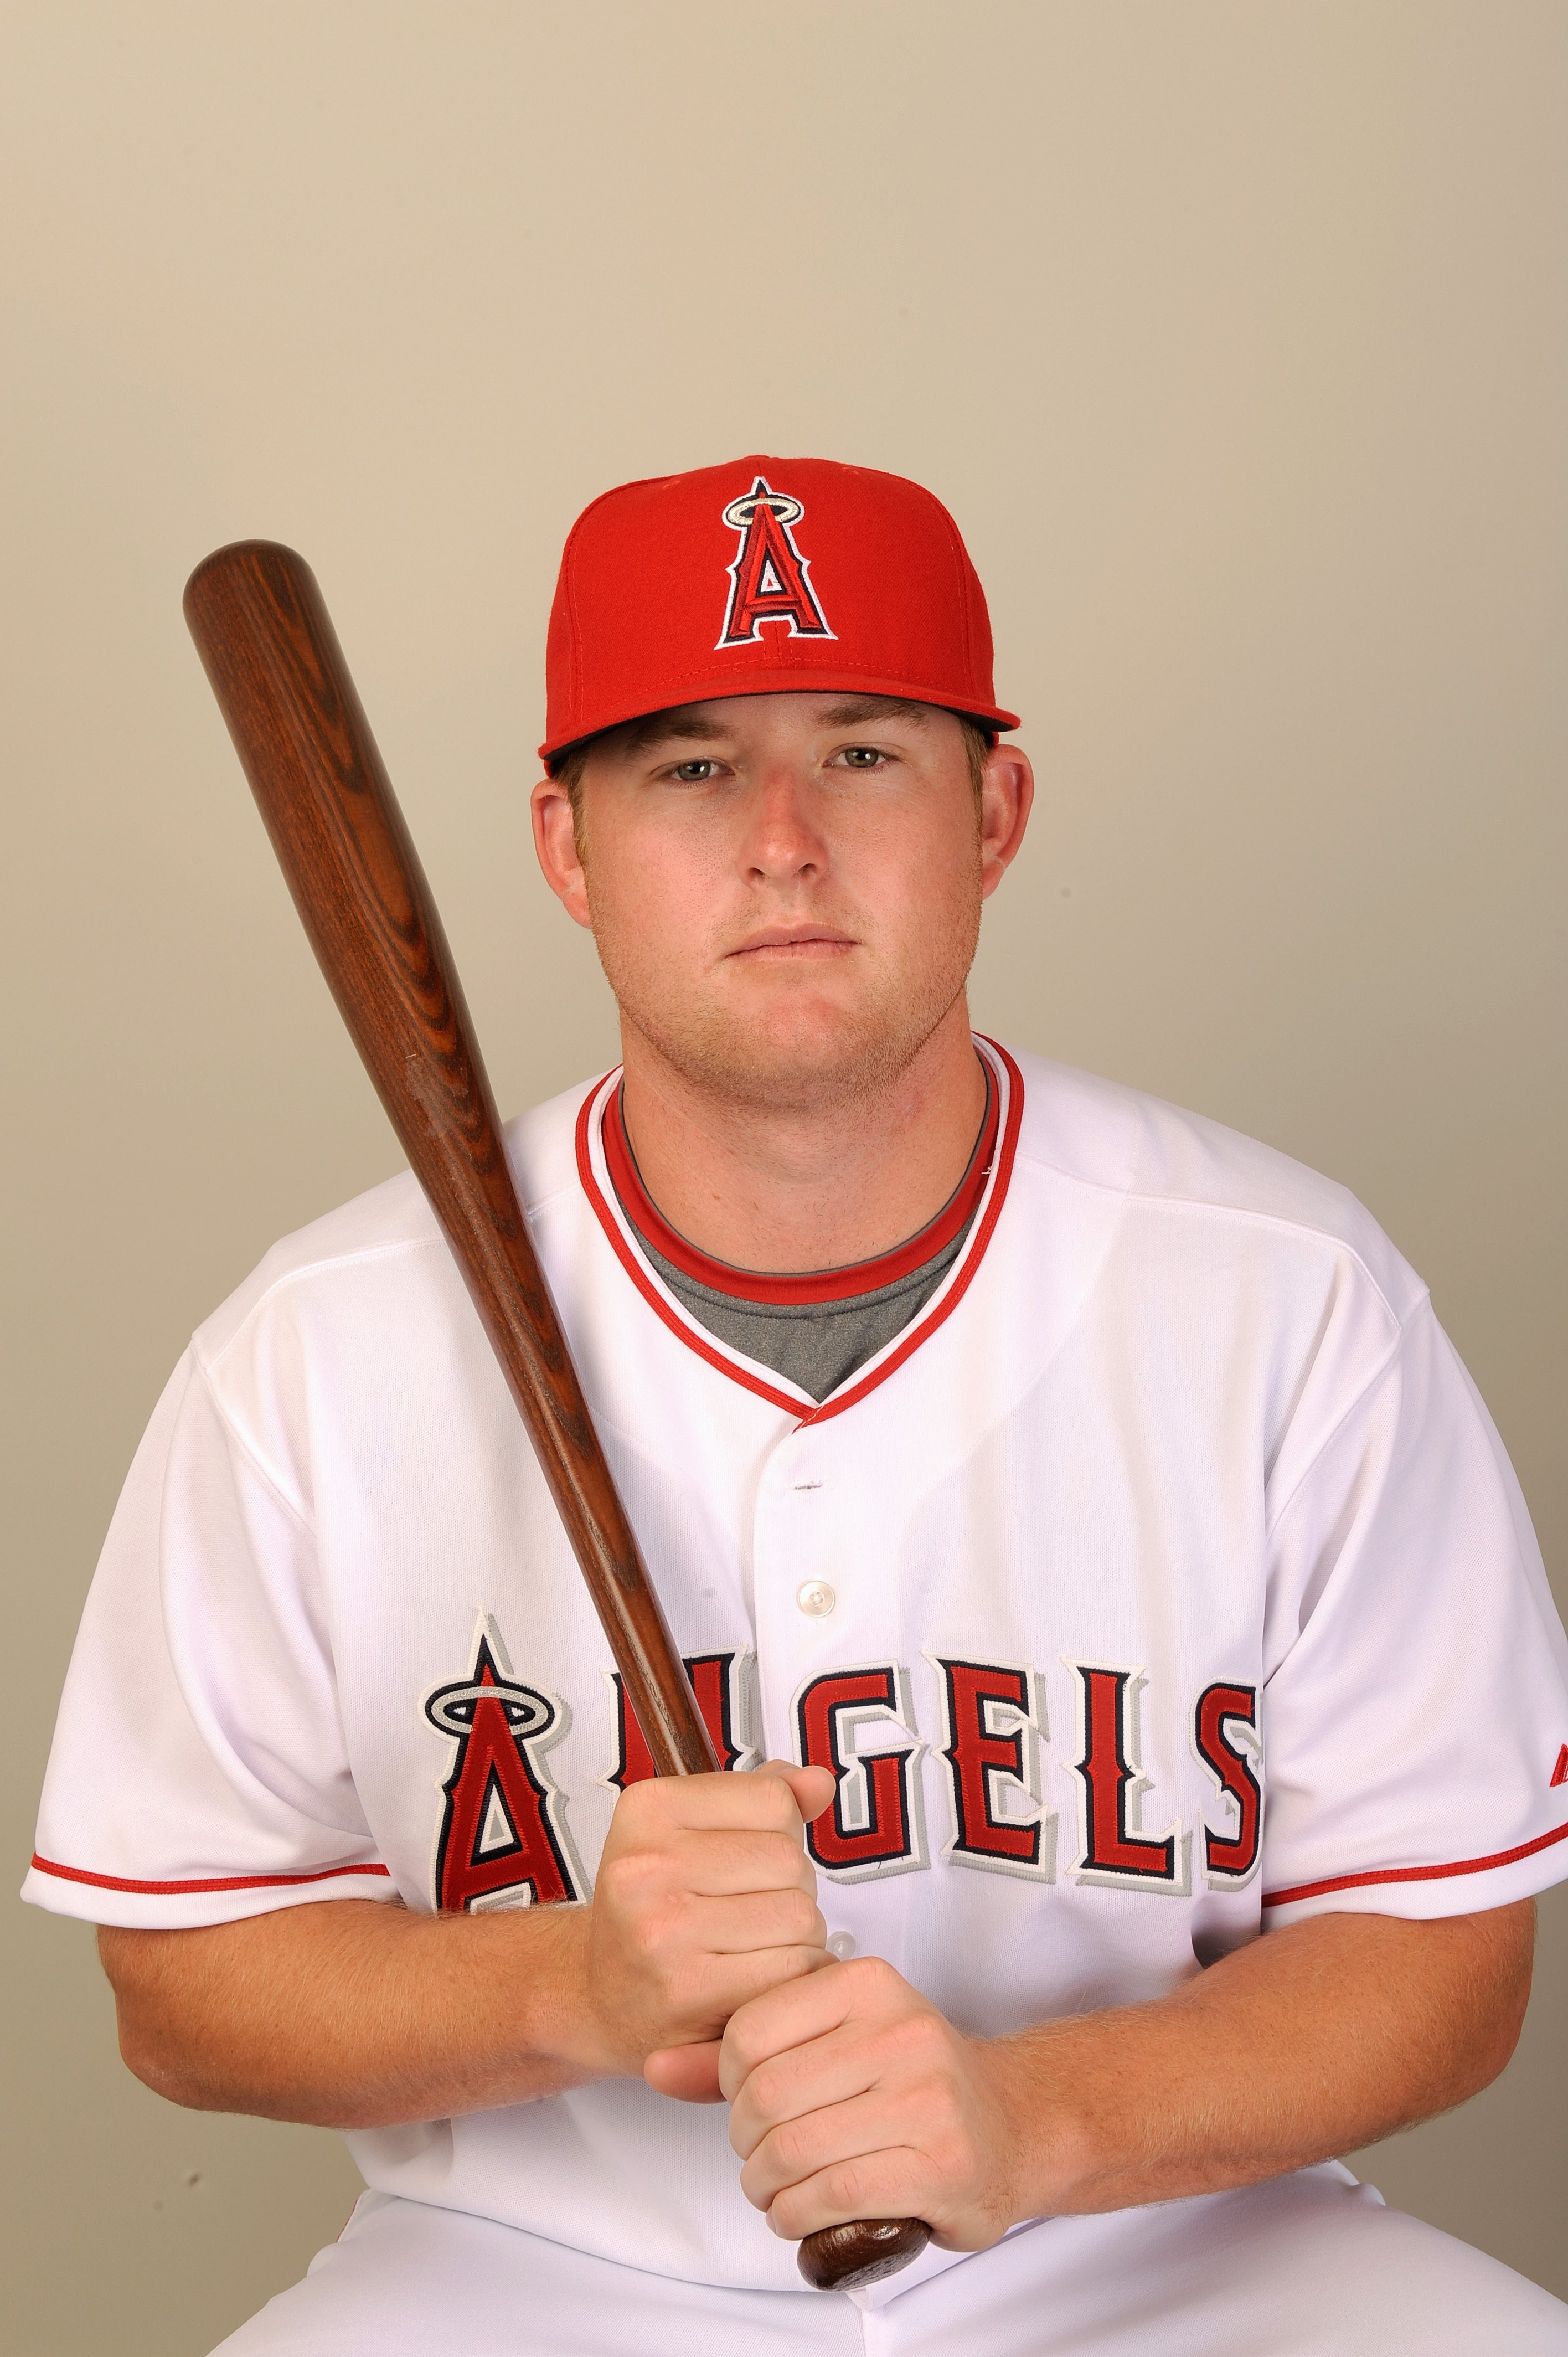 TEMPE, AZ - FEBRUARY 25:  Mark Trumbo #35 of the Los Angeles Angels of Anaheim poses during photo day at Tempe Diablo Stadium on February 25, 2009 in Tempe, Arizona. (Photo by Kevork Djansezian/Getty Images)